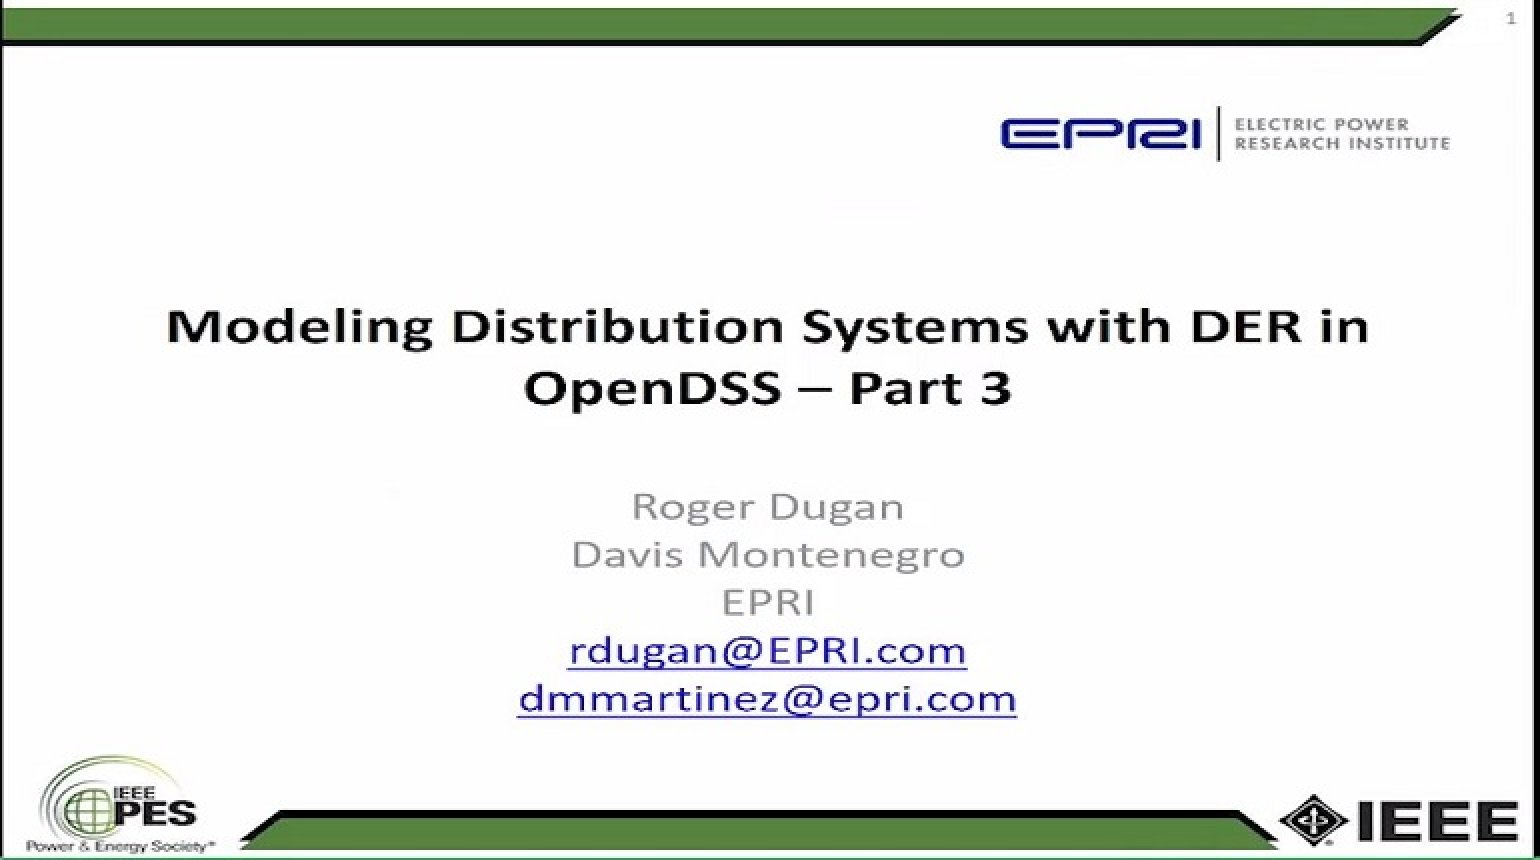 Introduction to OpenDSS Parallel Machine - Parallel Processing with OpenDSS Part 3